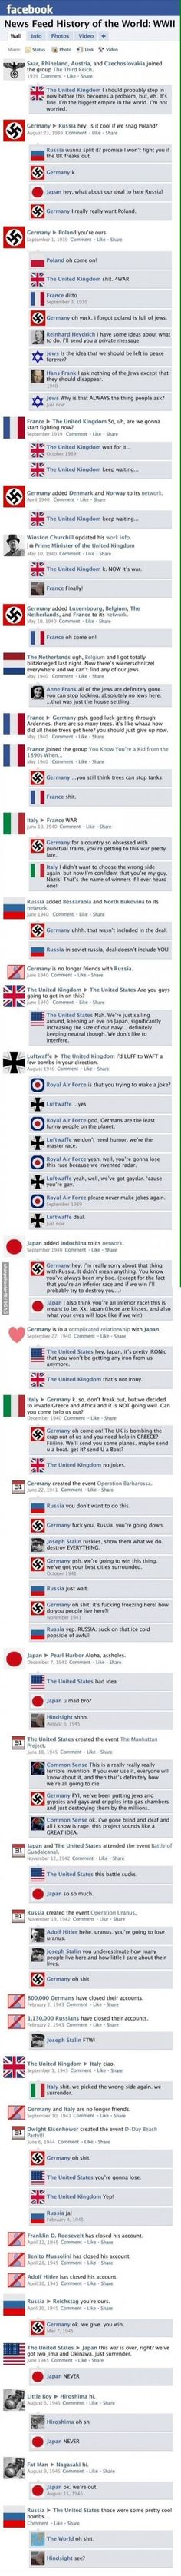 WWII if FB had existed… some DARK humor, but hey, helpful for studying European History!